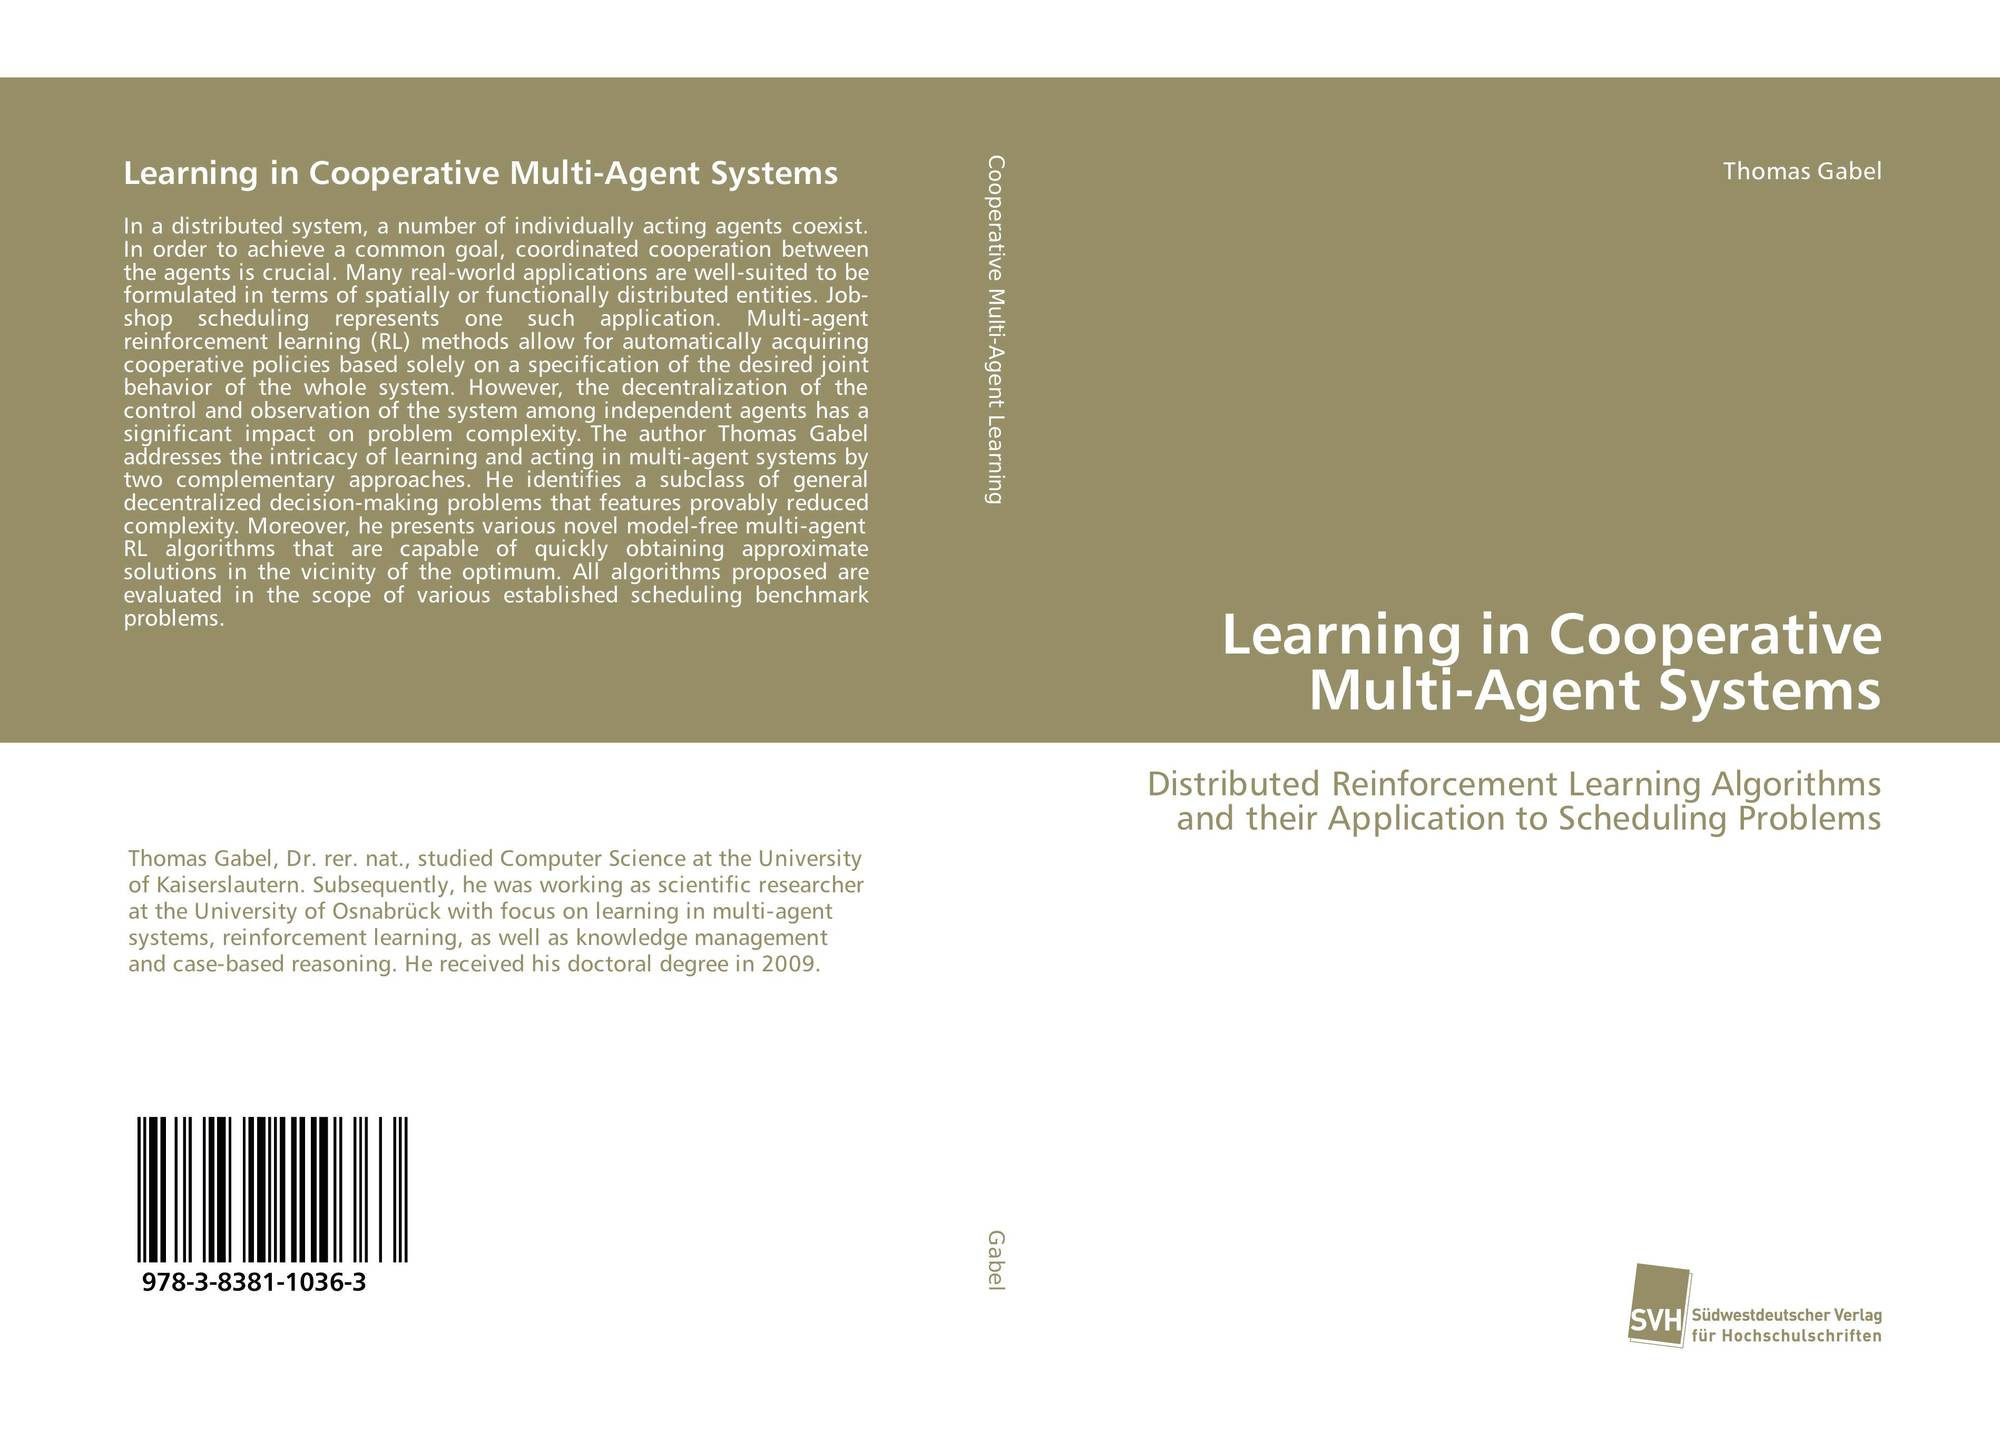 Learning in Cooperative Multi-Agent Systems, 978-3-8381-1036